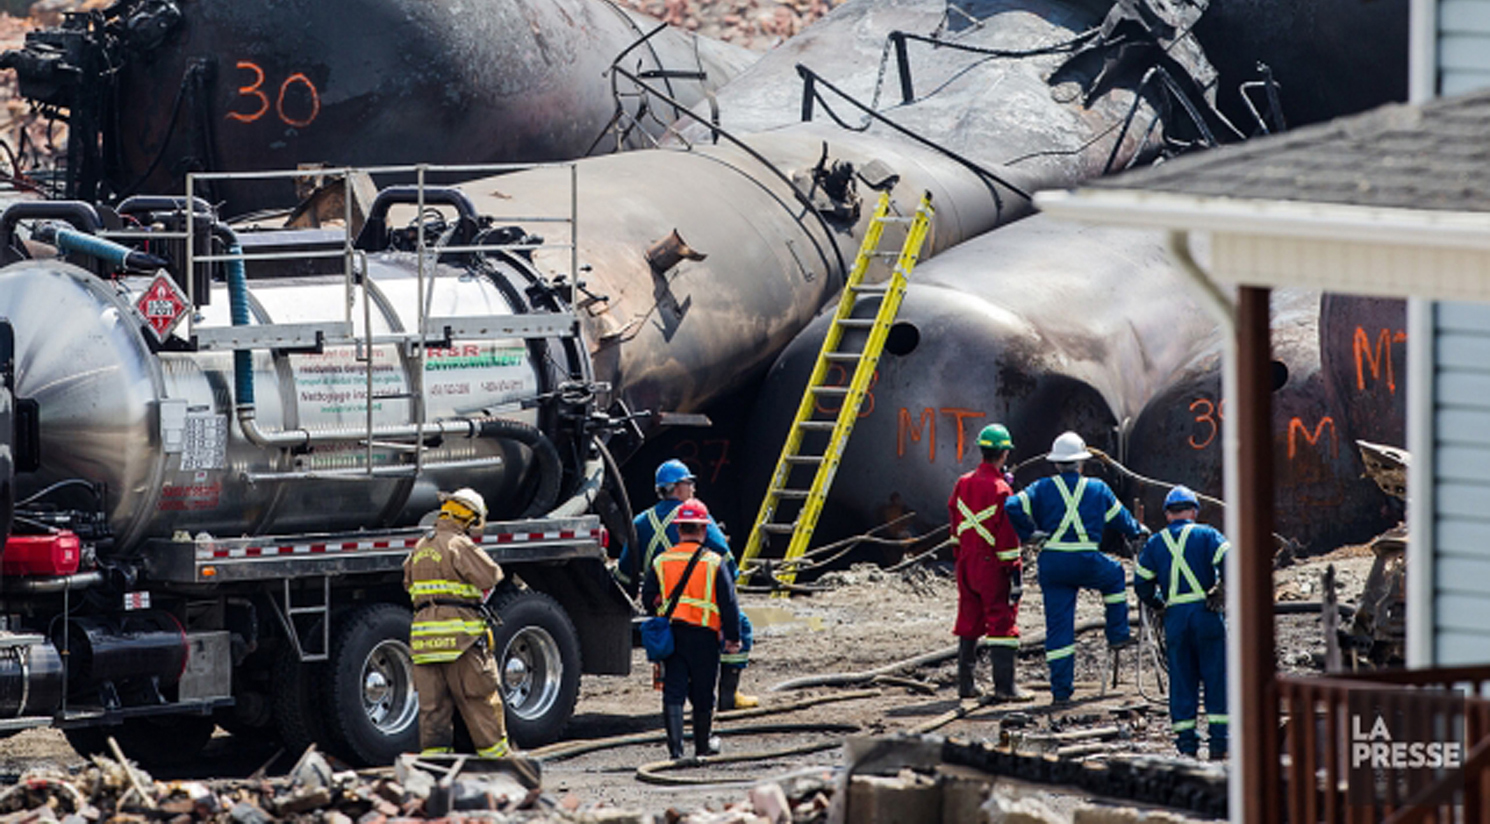 Ingénierie, inspections et supervision de construction suite à l'accident au Lac Mégantic